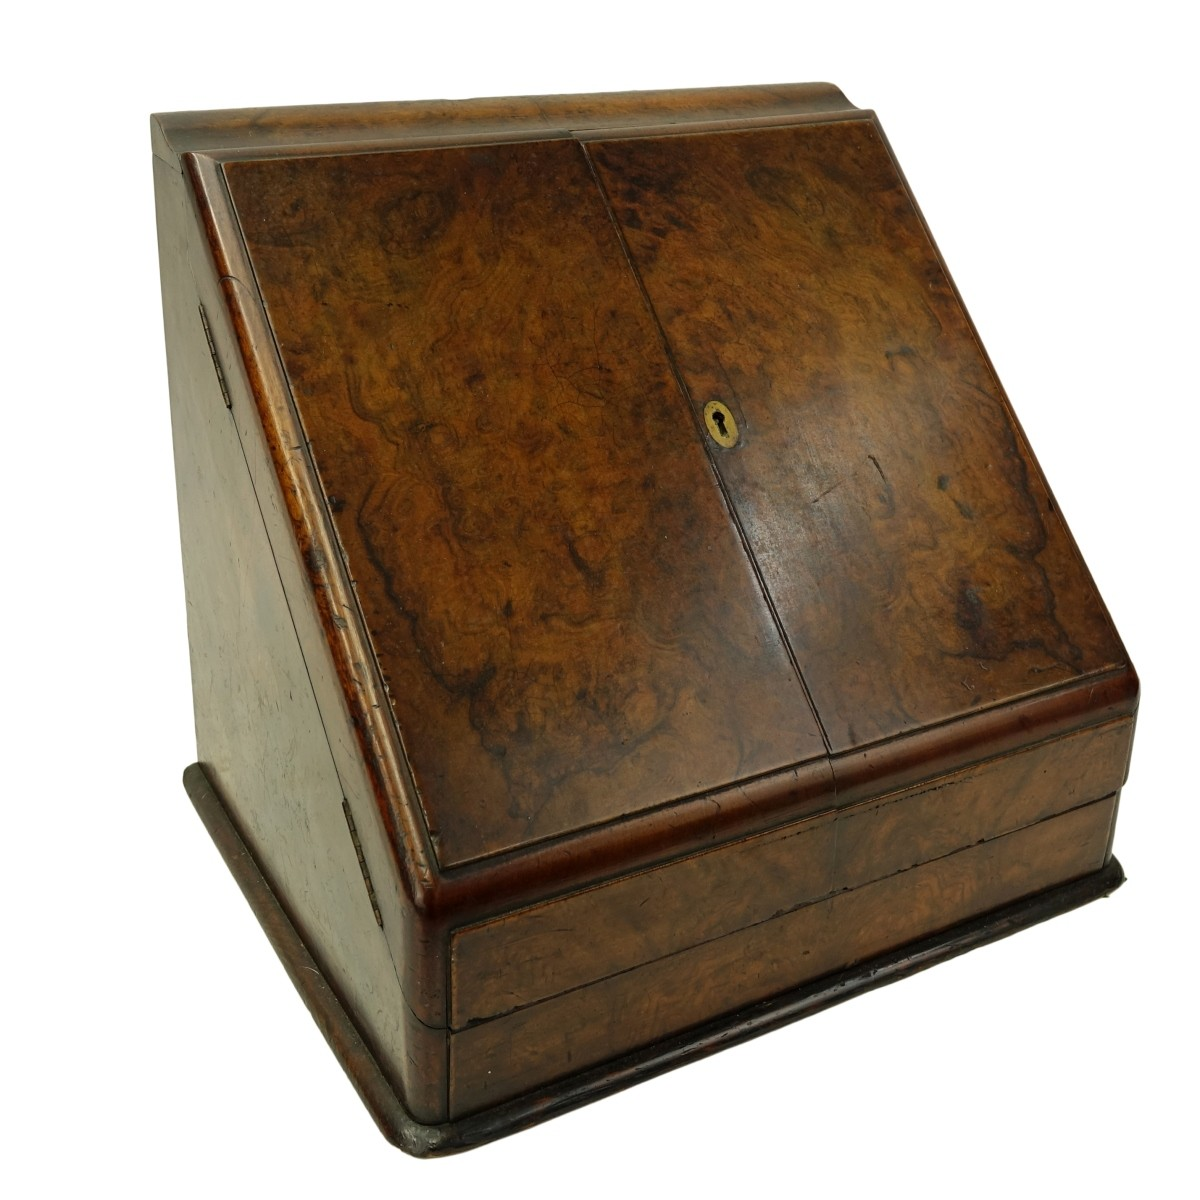 English Desk Box